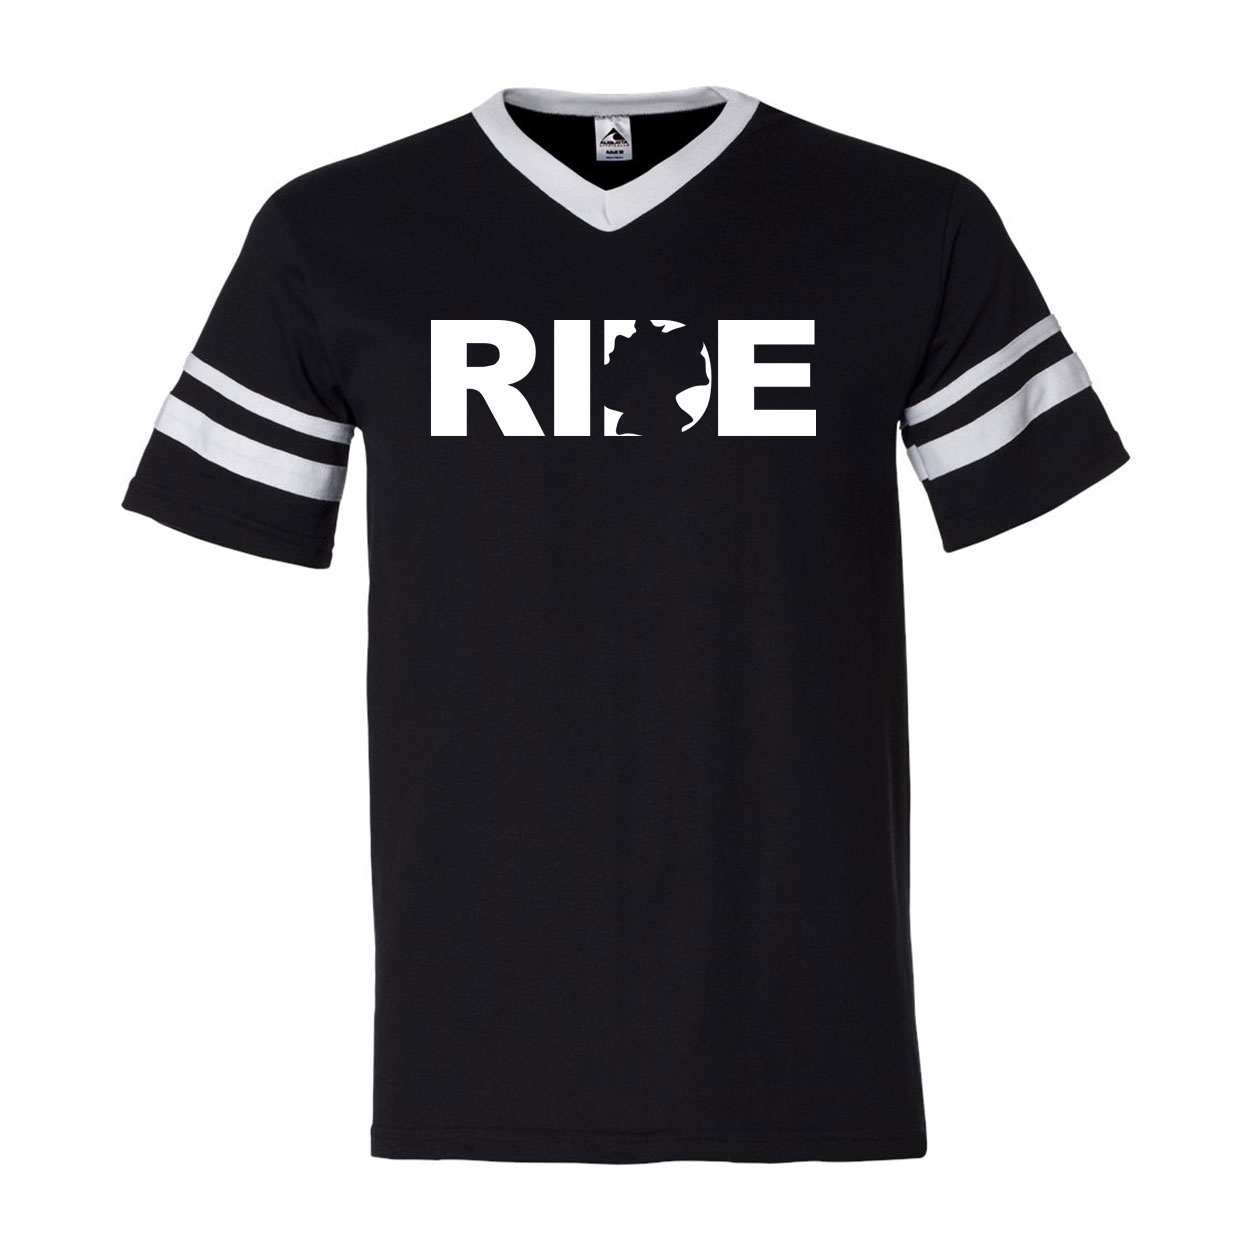 Ride Germany Classic Premium Striped Jersey T-Shirt Black/White (White Logo)